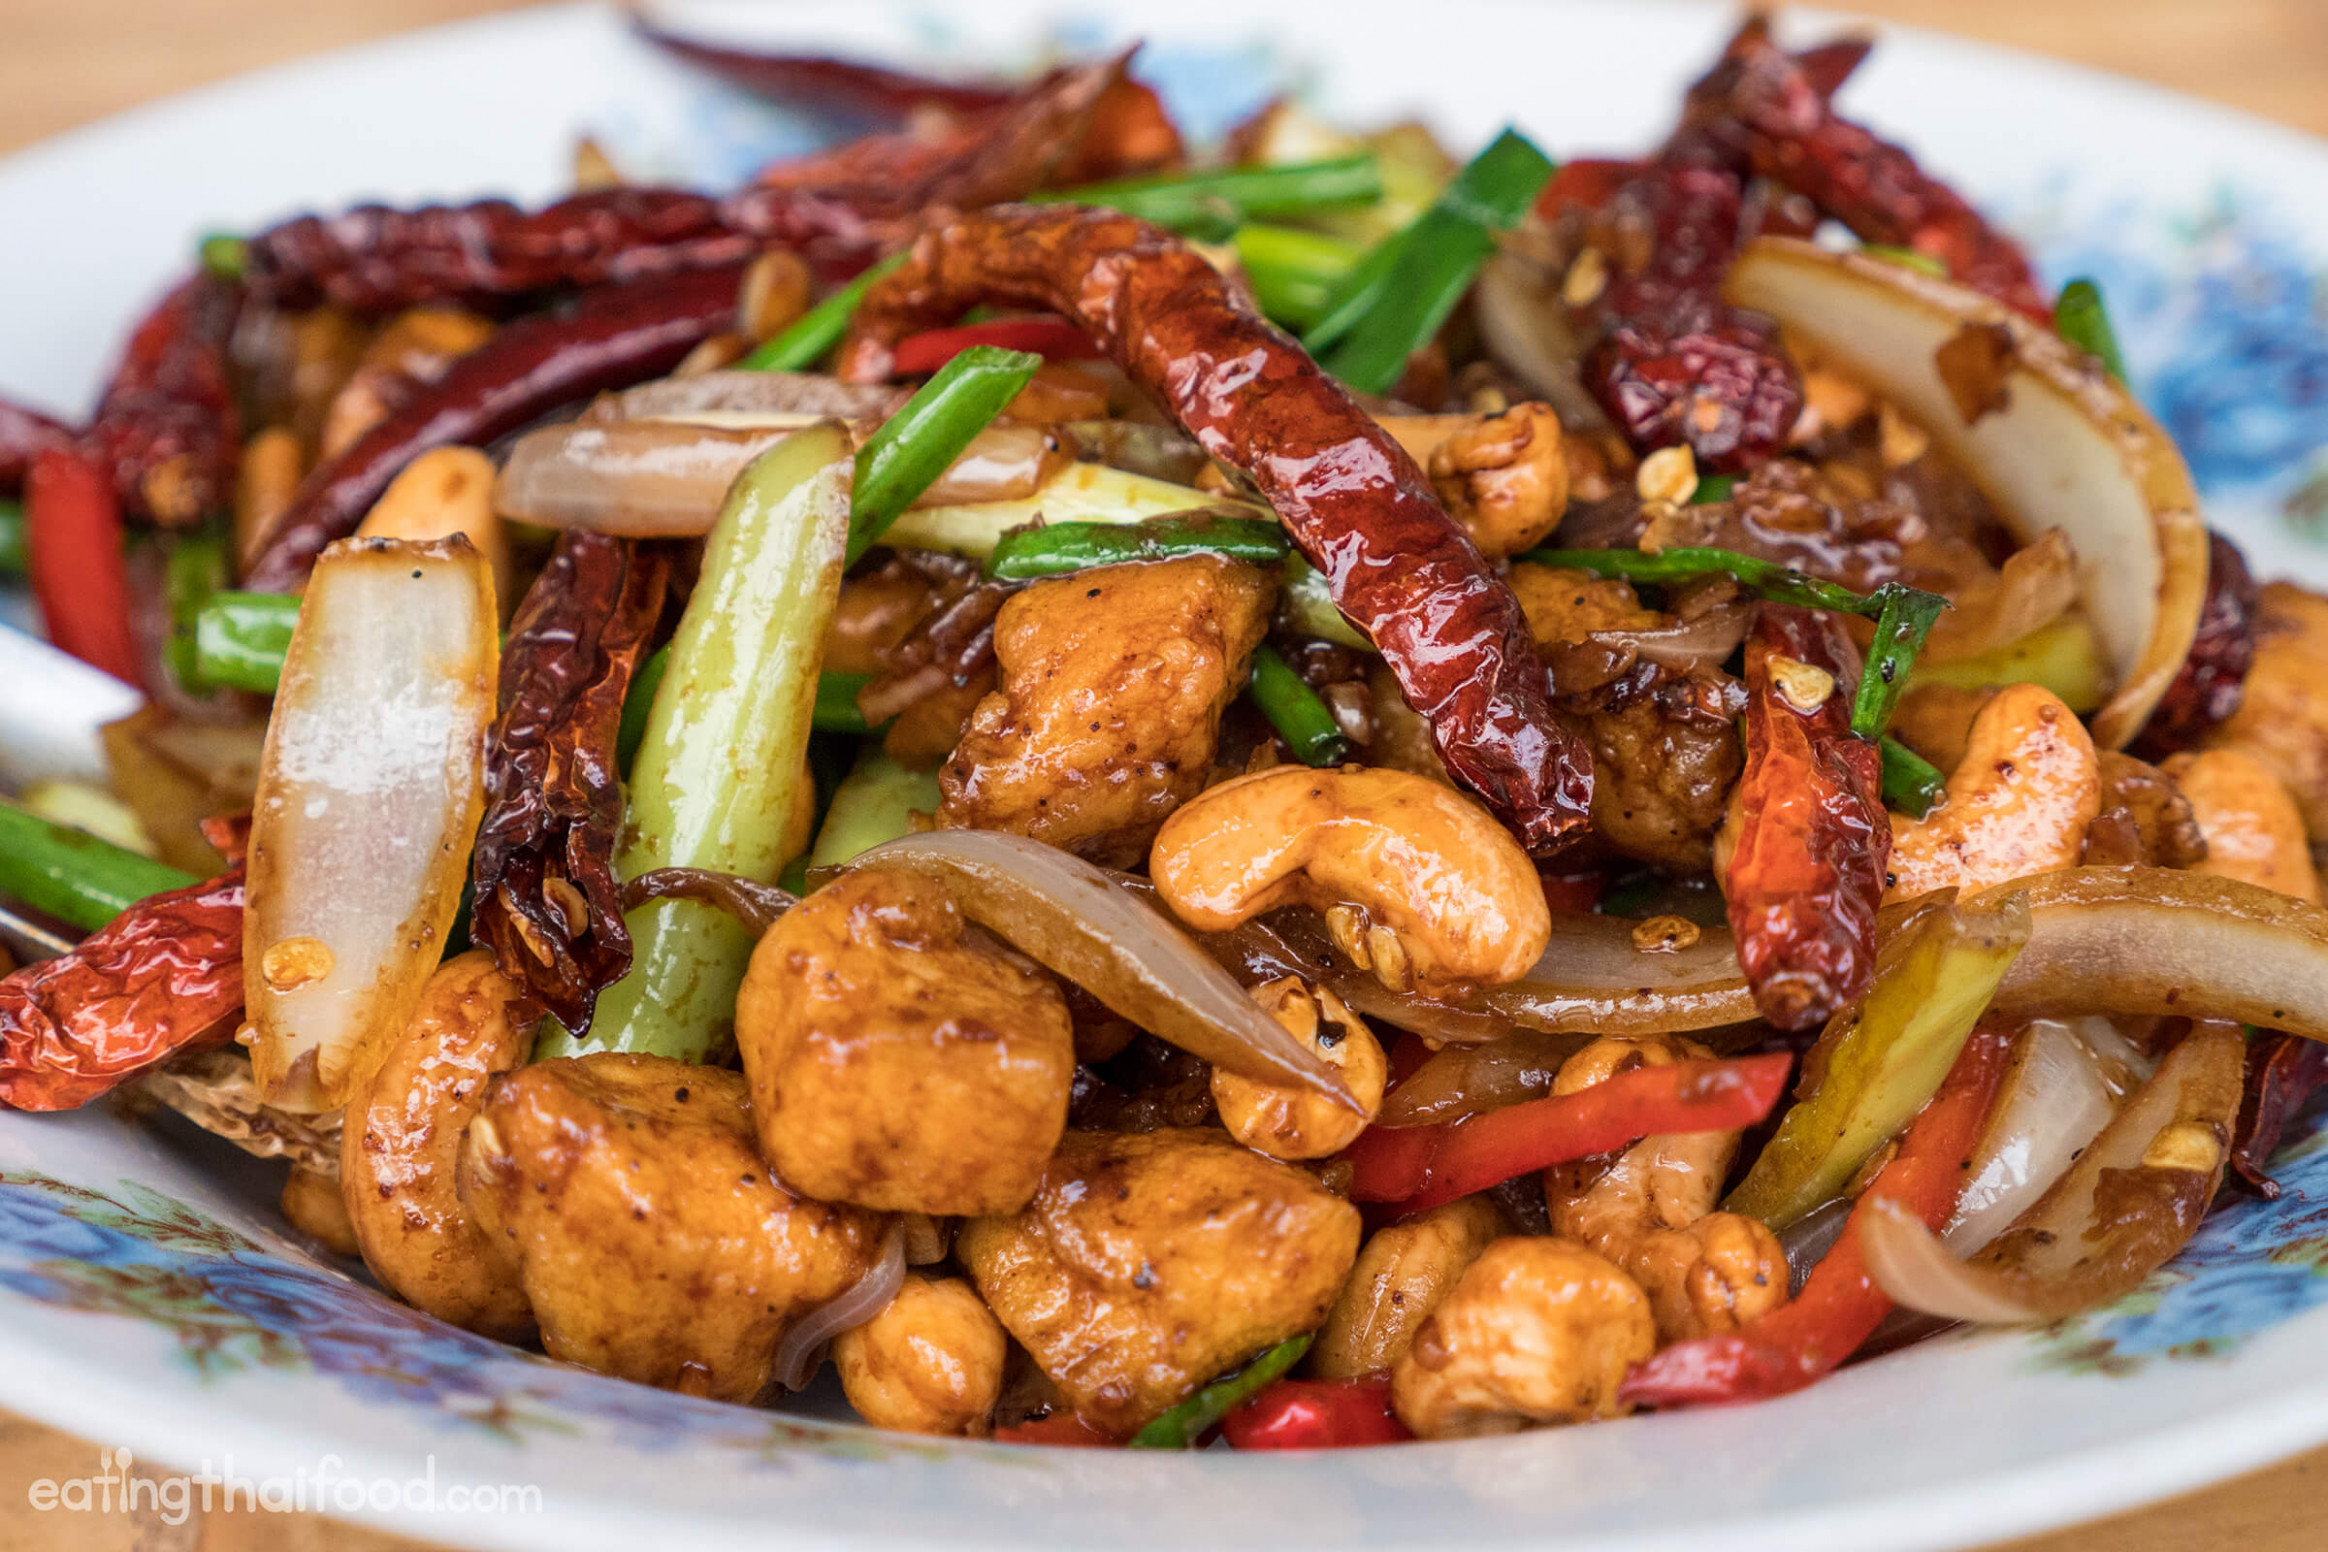 Amazing Thai Cashew Chicken Recipe - Authentic and Easy to Make! - food recipes chicken